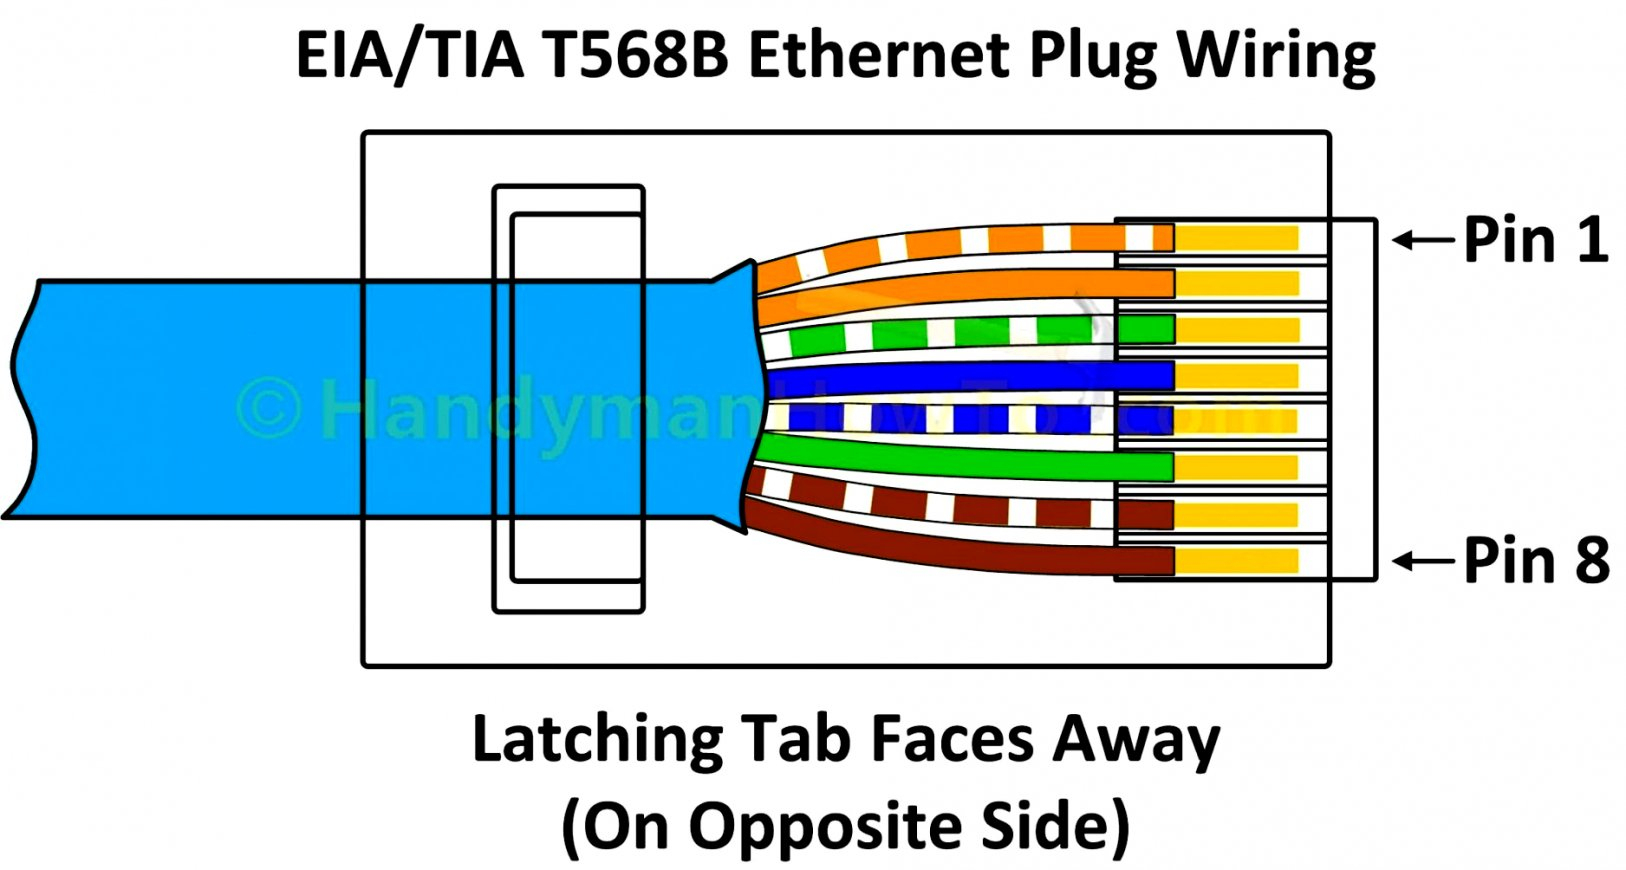 Cat5E Wiring Diagram Wall | Wiring Diagram - Cat 6 Wiring Diagram For Wall Plates